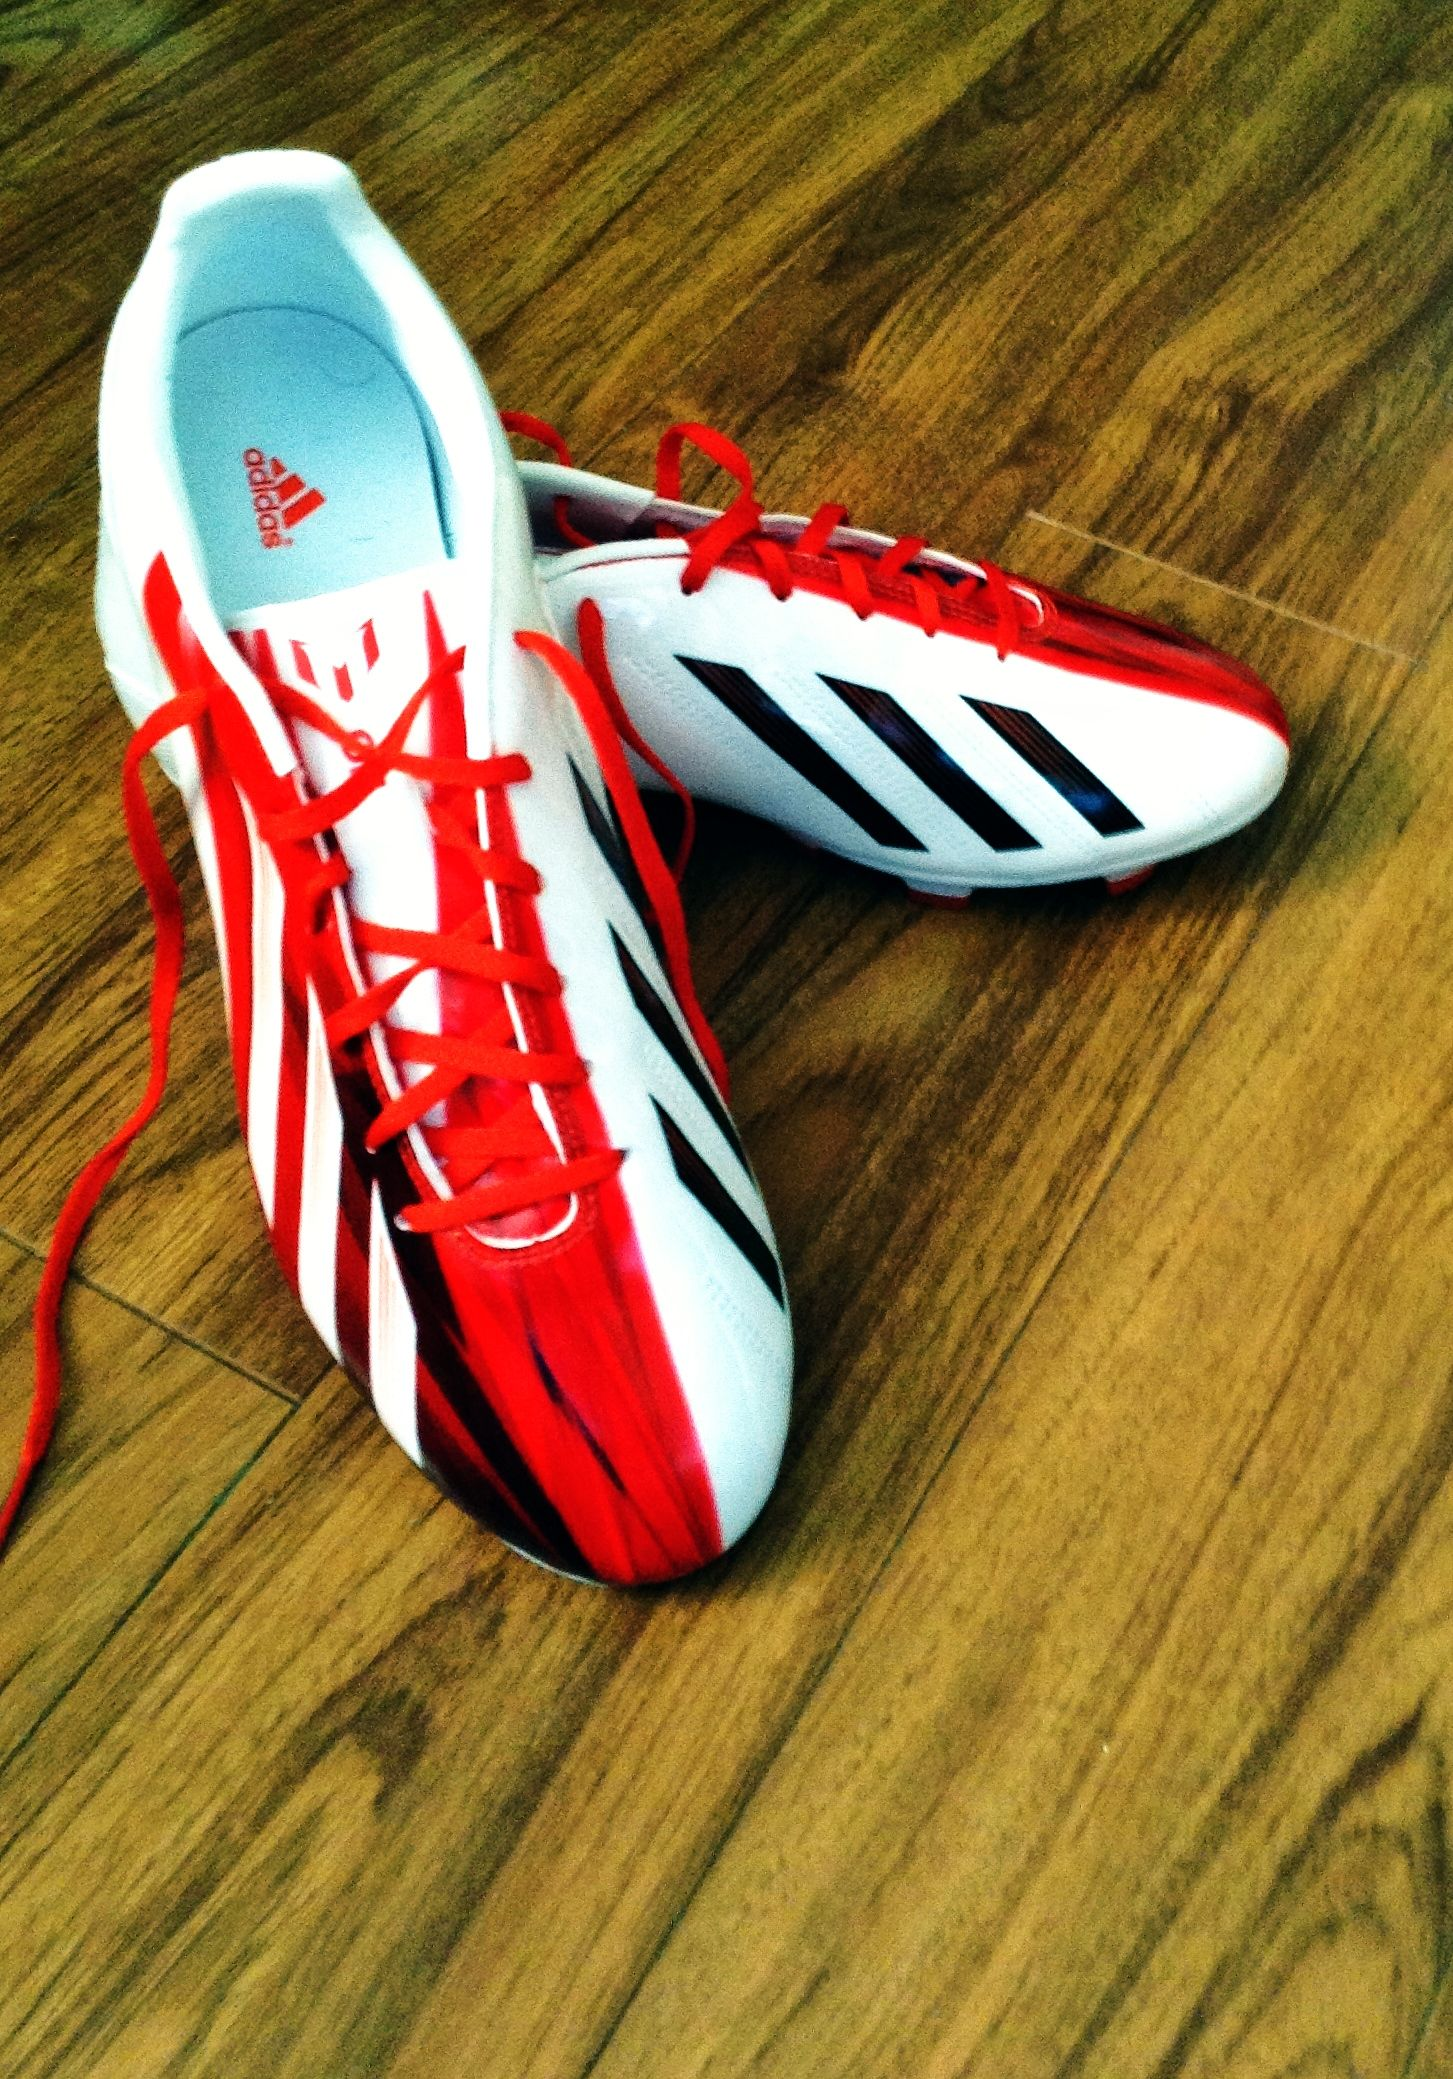 Lionel Messi Cleats : lionel, messi, cleats, Lionel, Messi, Boots